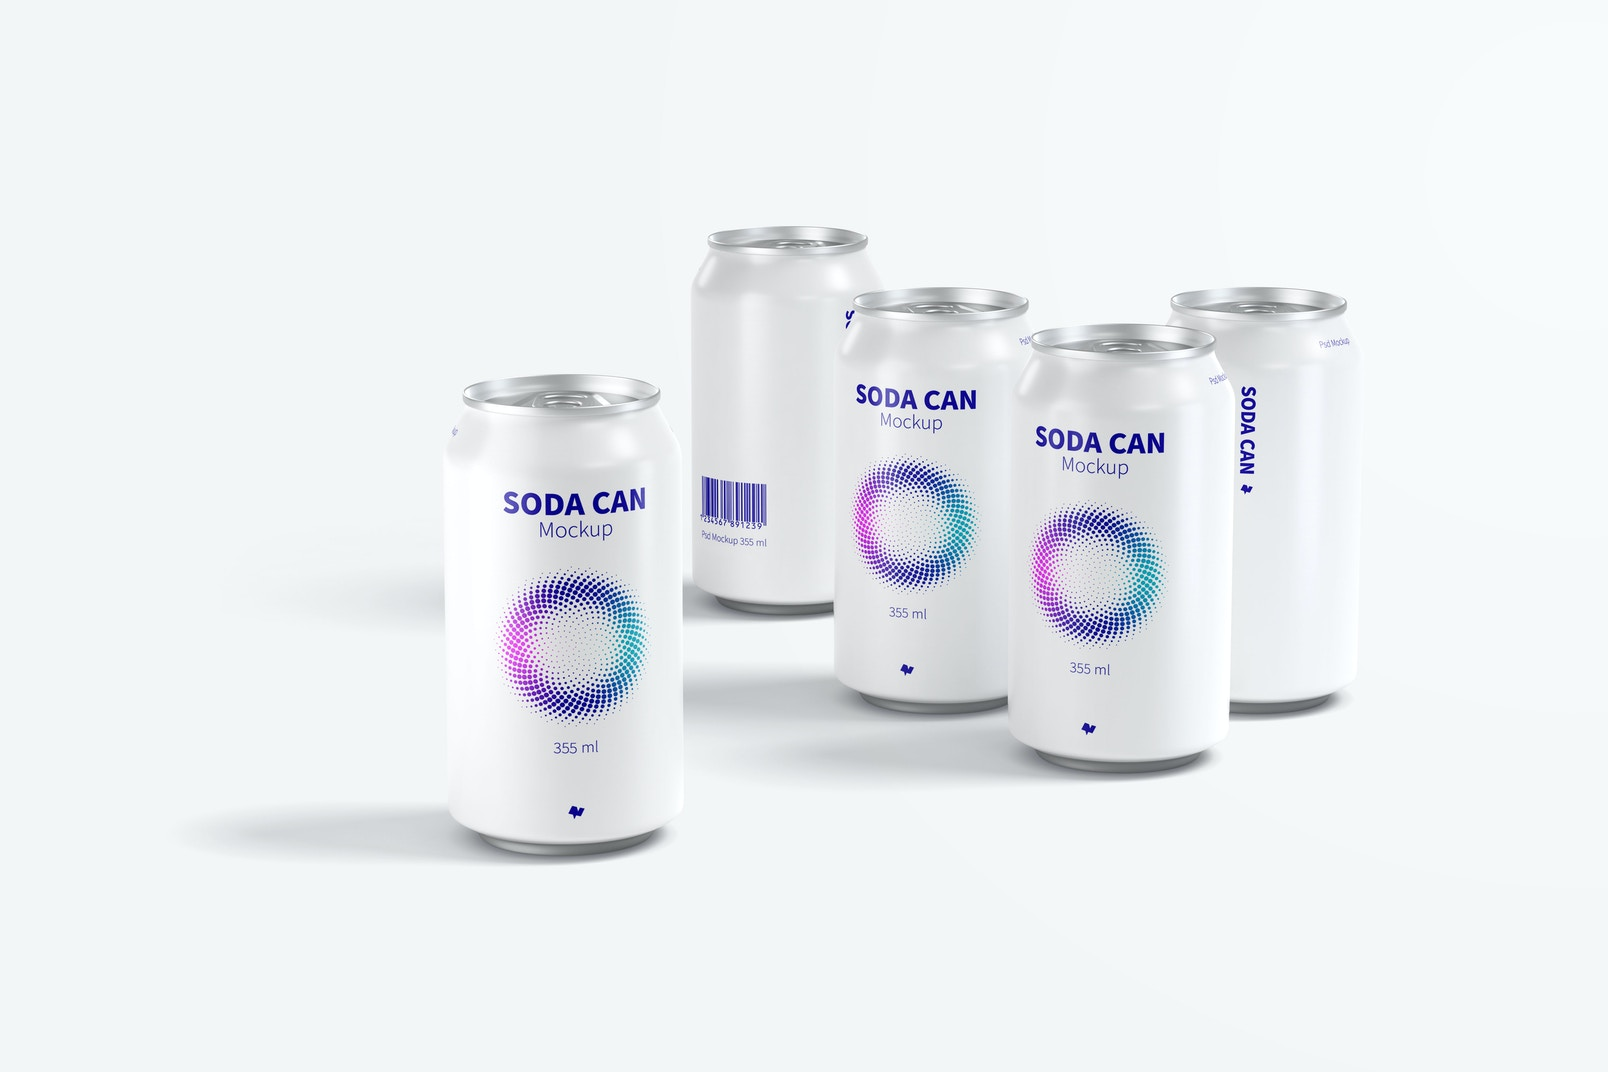 355 ml Soda Can Mockup Set, Front View